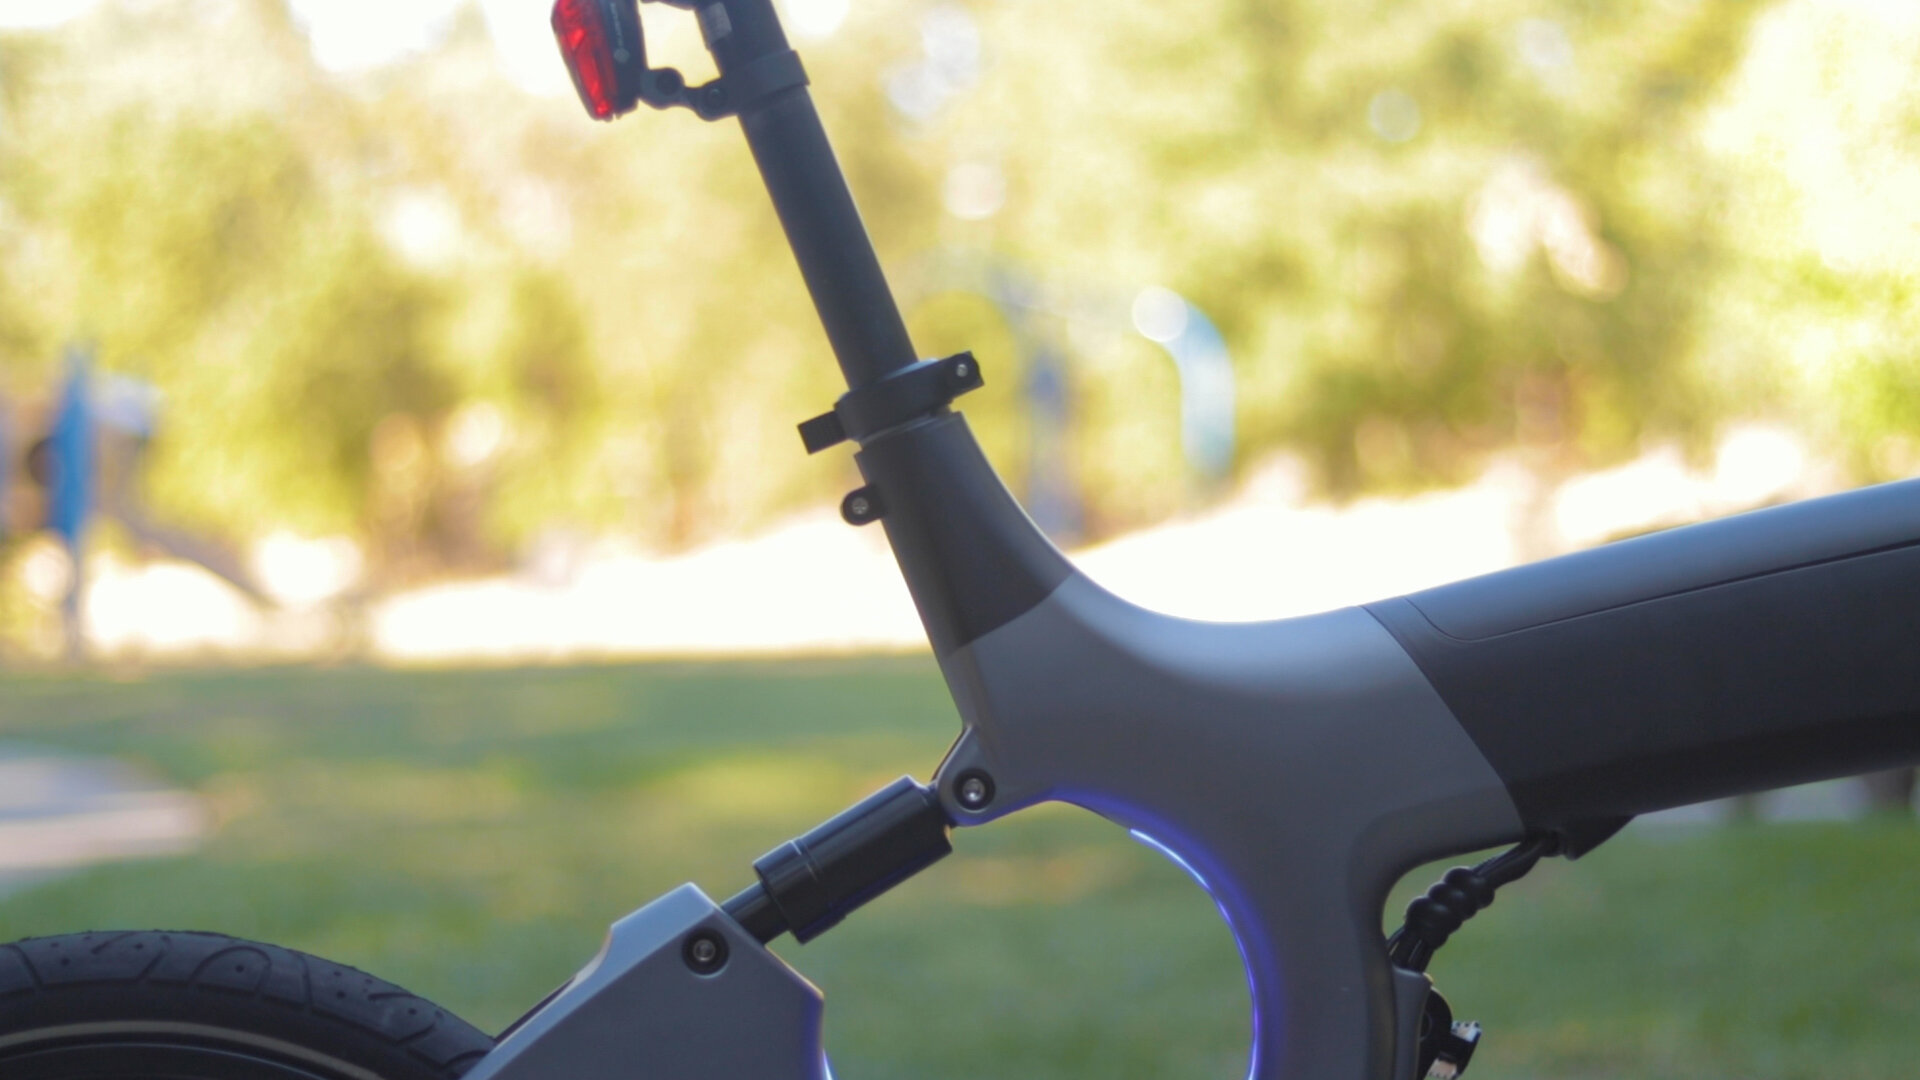 flowdot-electric-bike-review-2019-frame-2.jpg